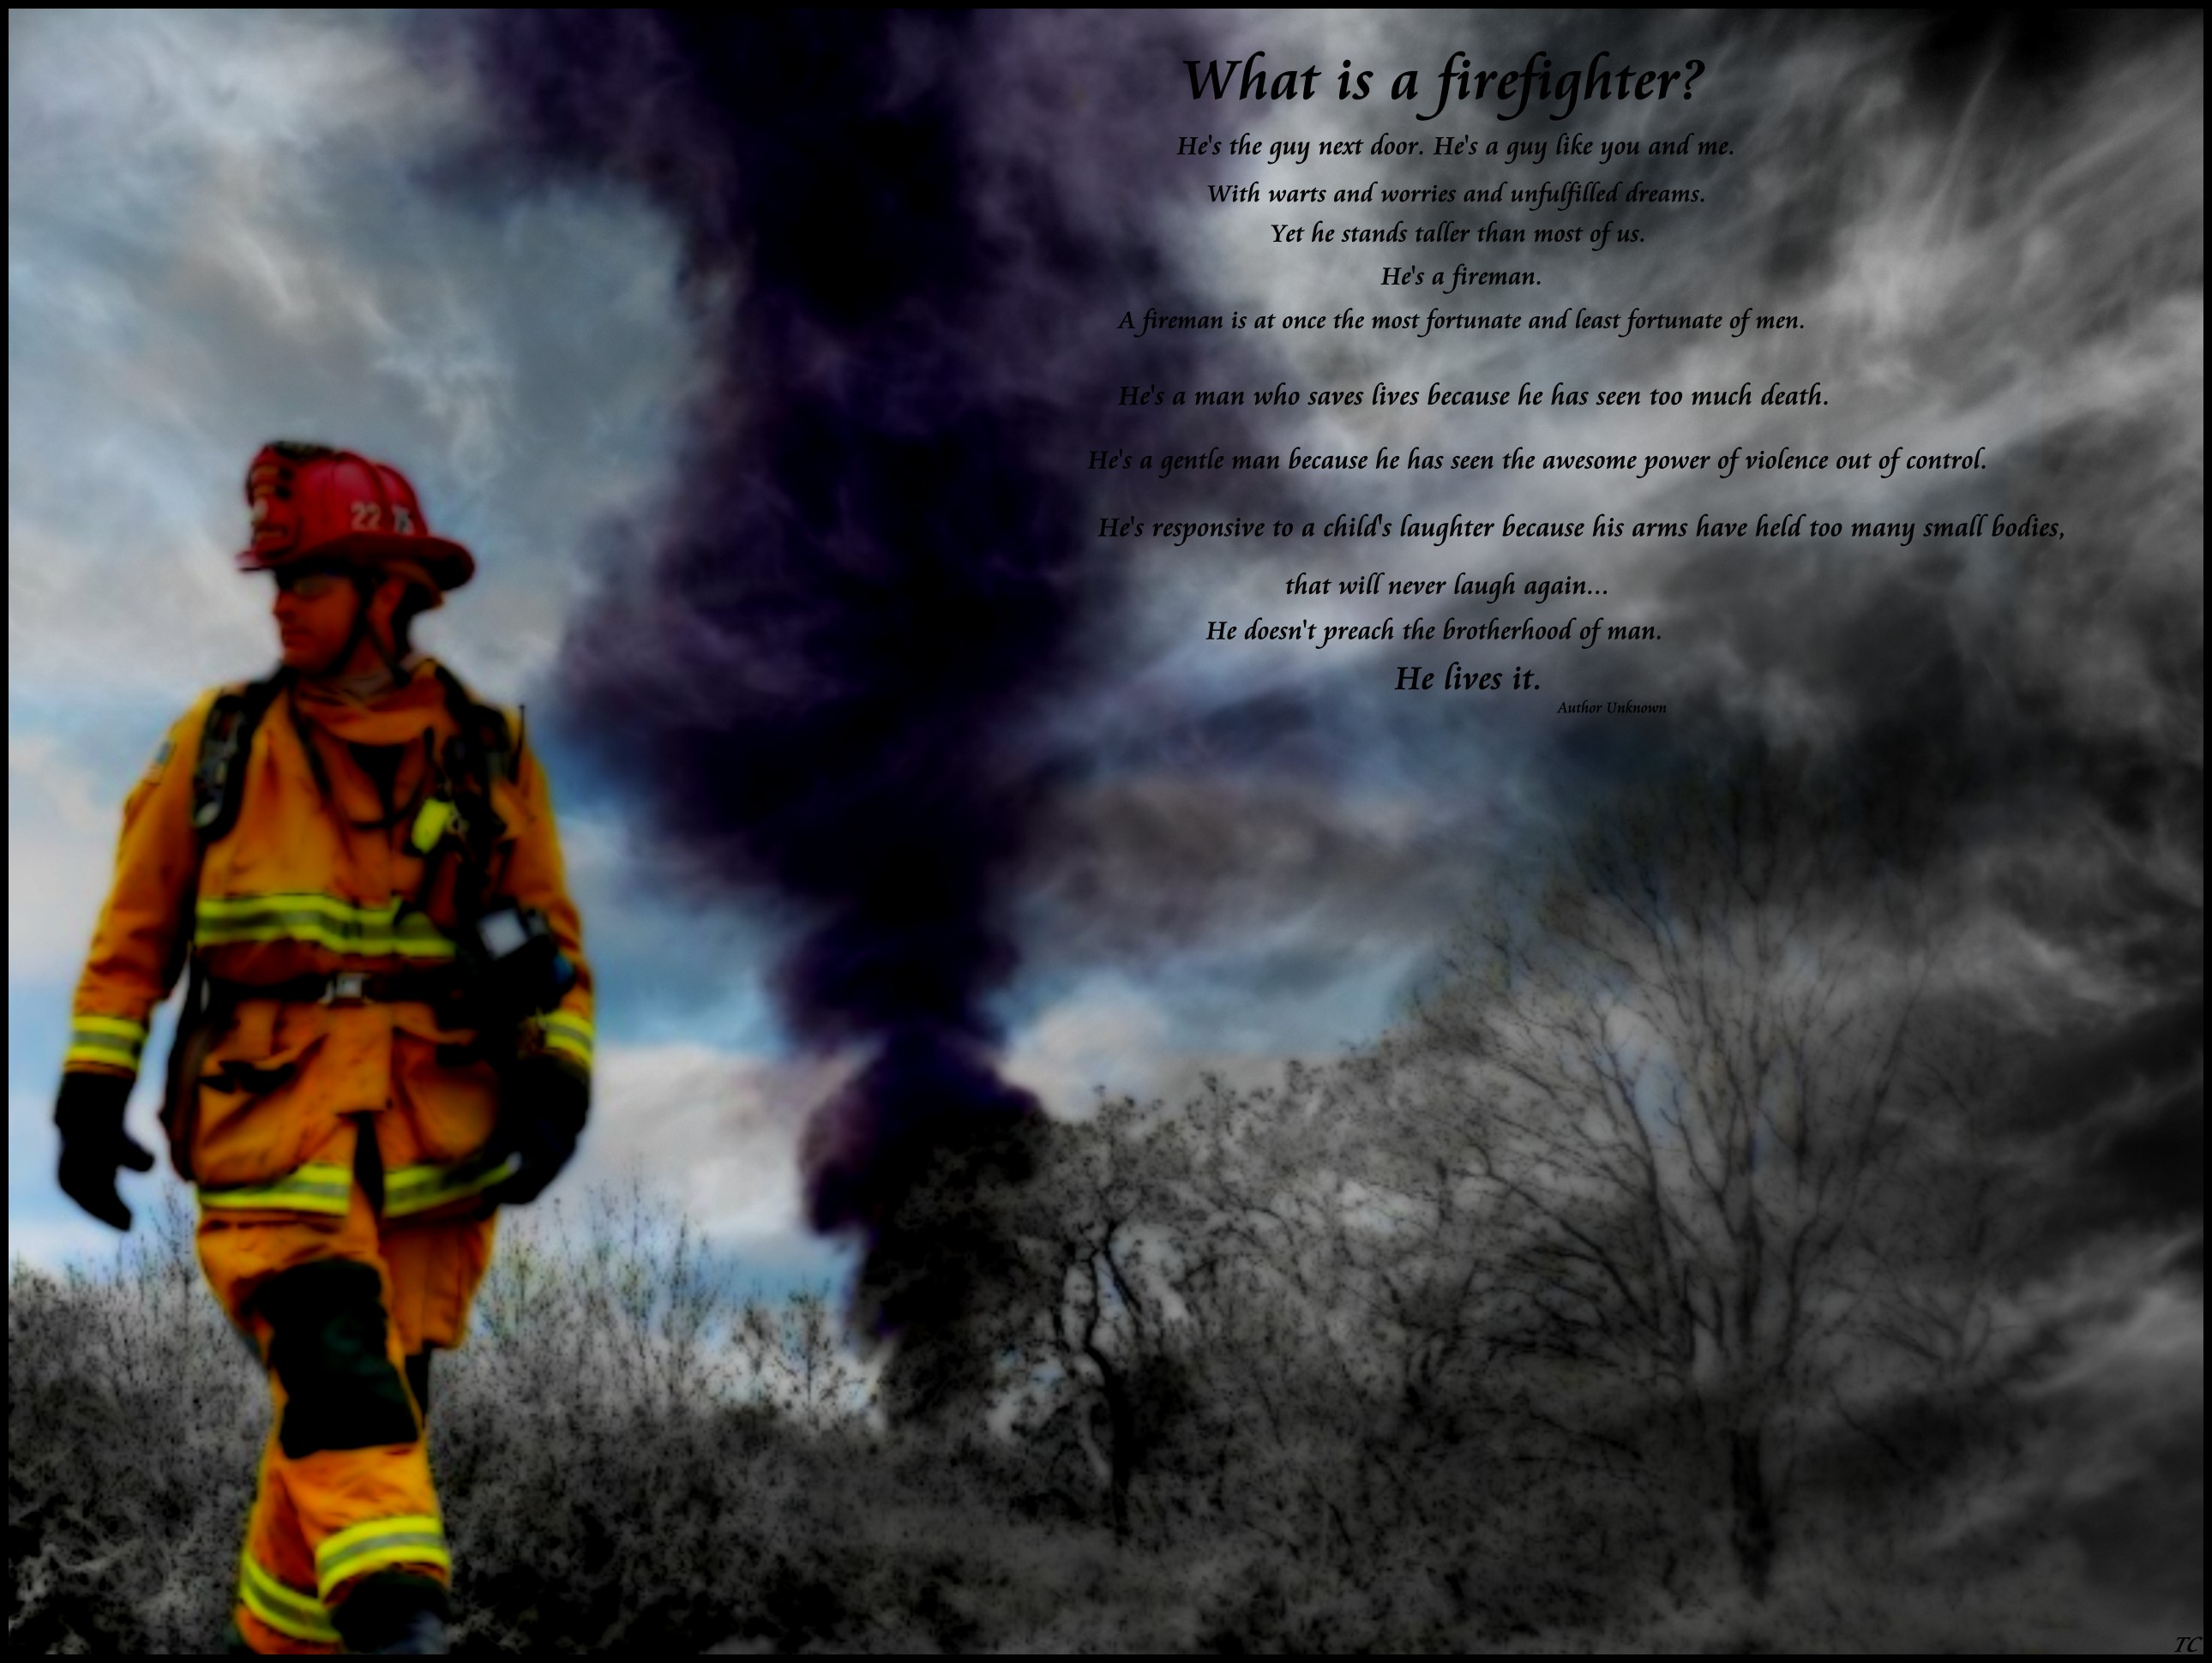 Firefighter Prayer Wallpaper Firefighter wallpaper 2580x1940